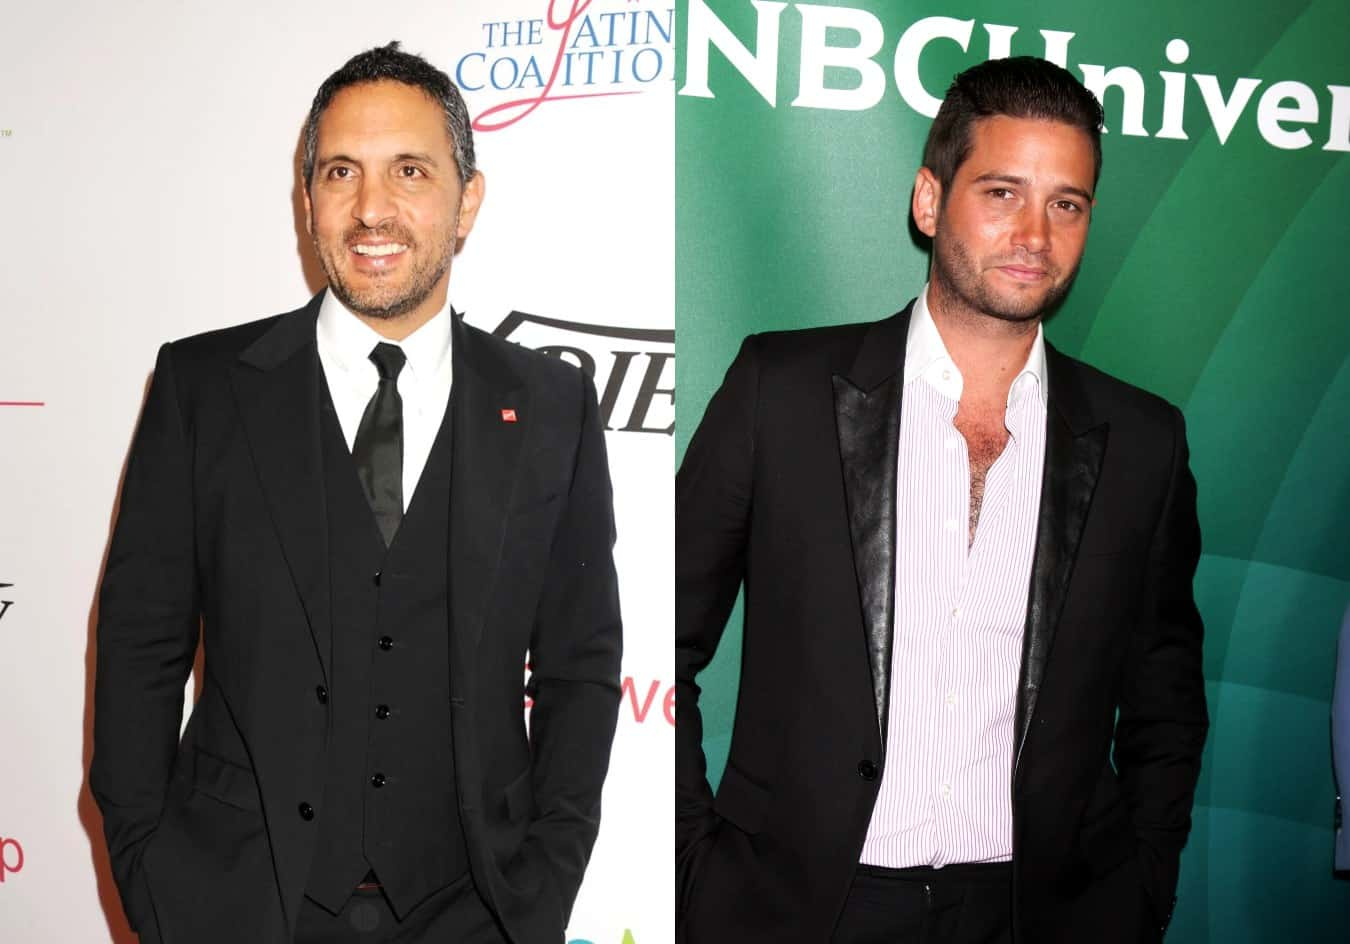 RHOBH's Mauricio Umansky and MDL's Josh Flagg Make Top 30 L.A. Realtors List! See Which Other Bravo Stars Made the Cut